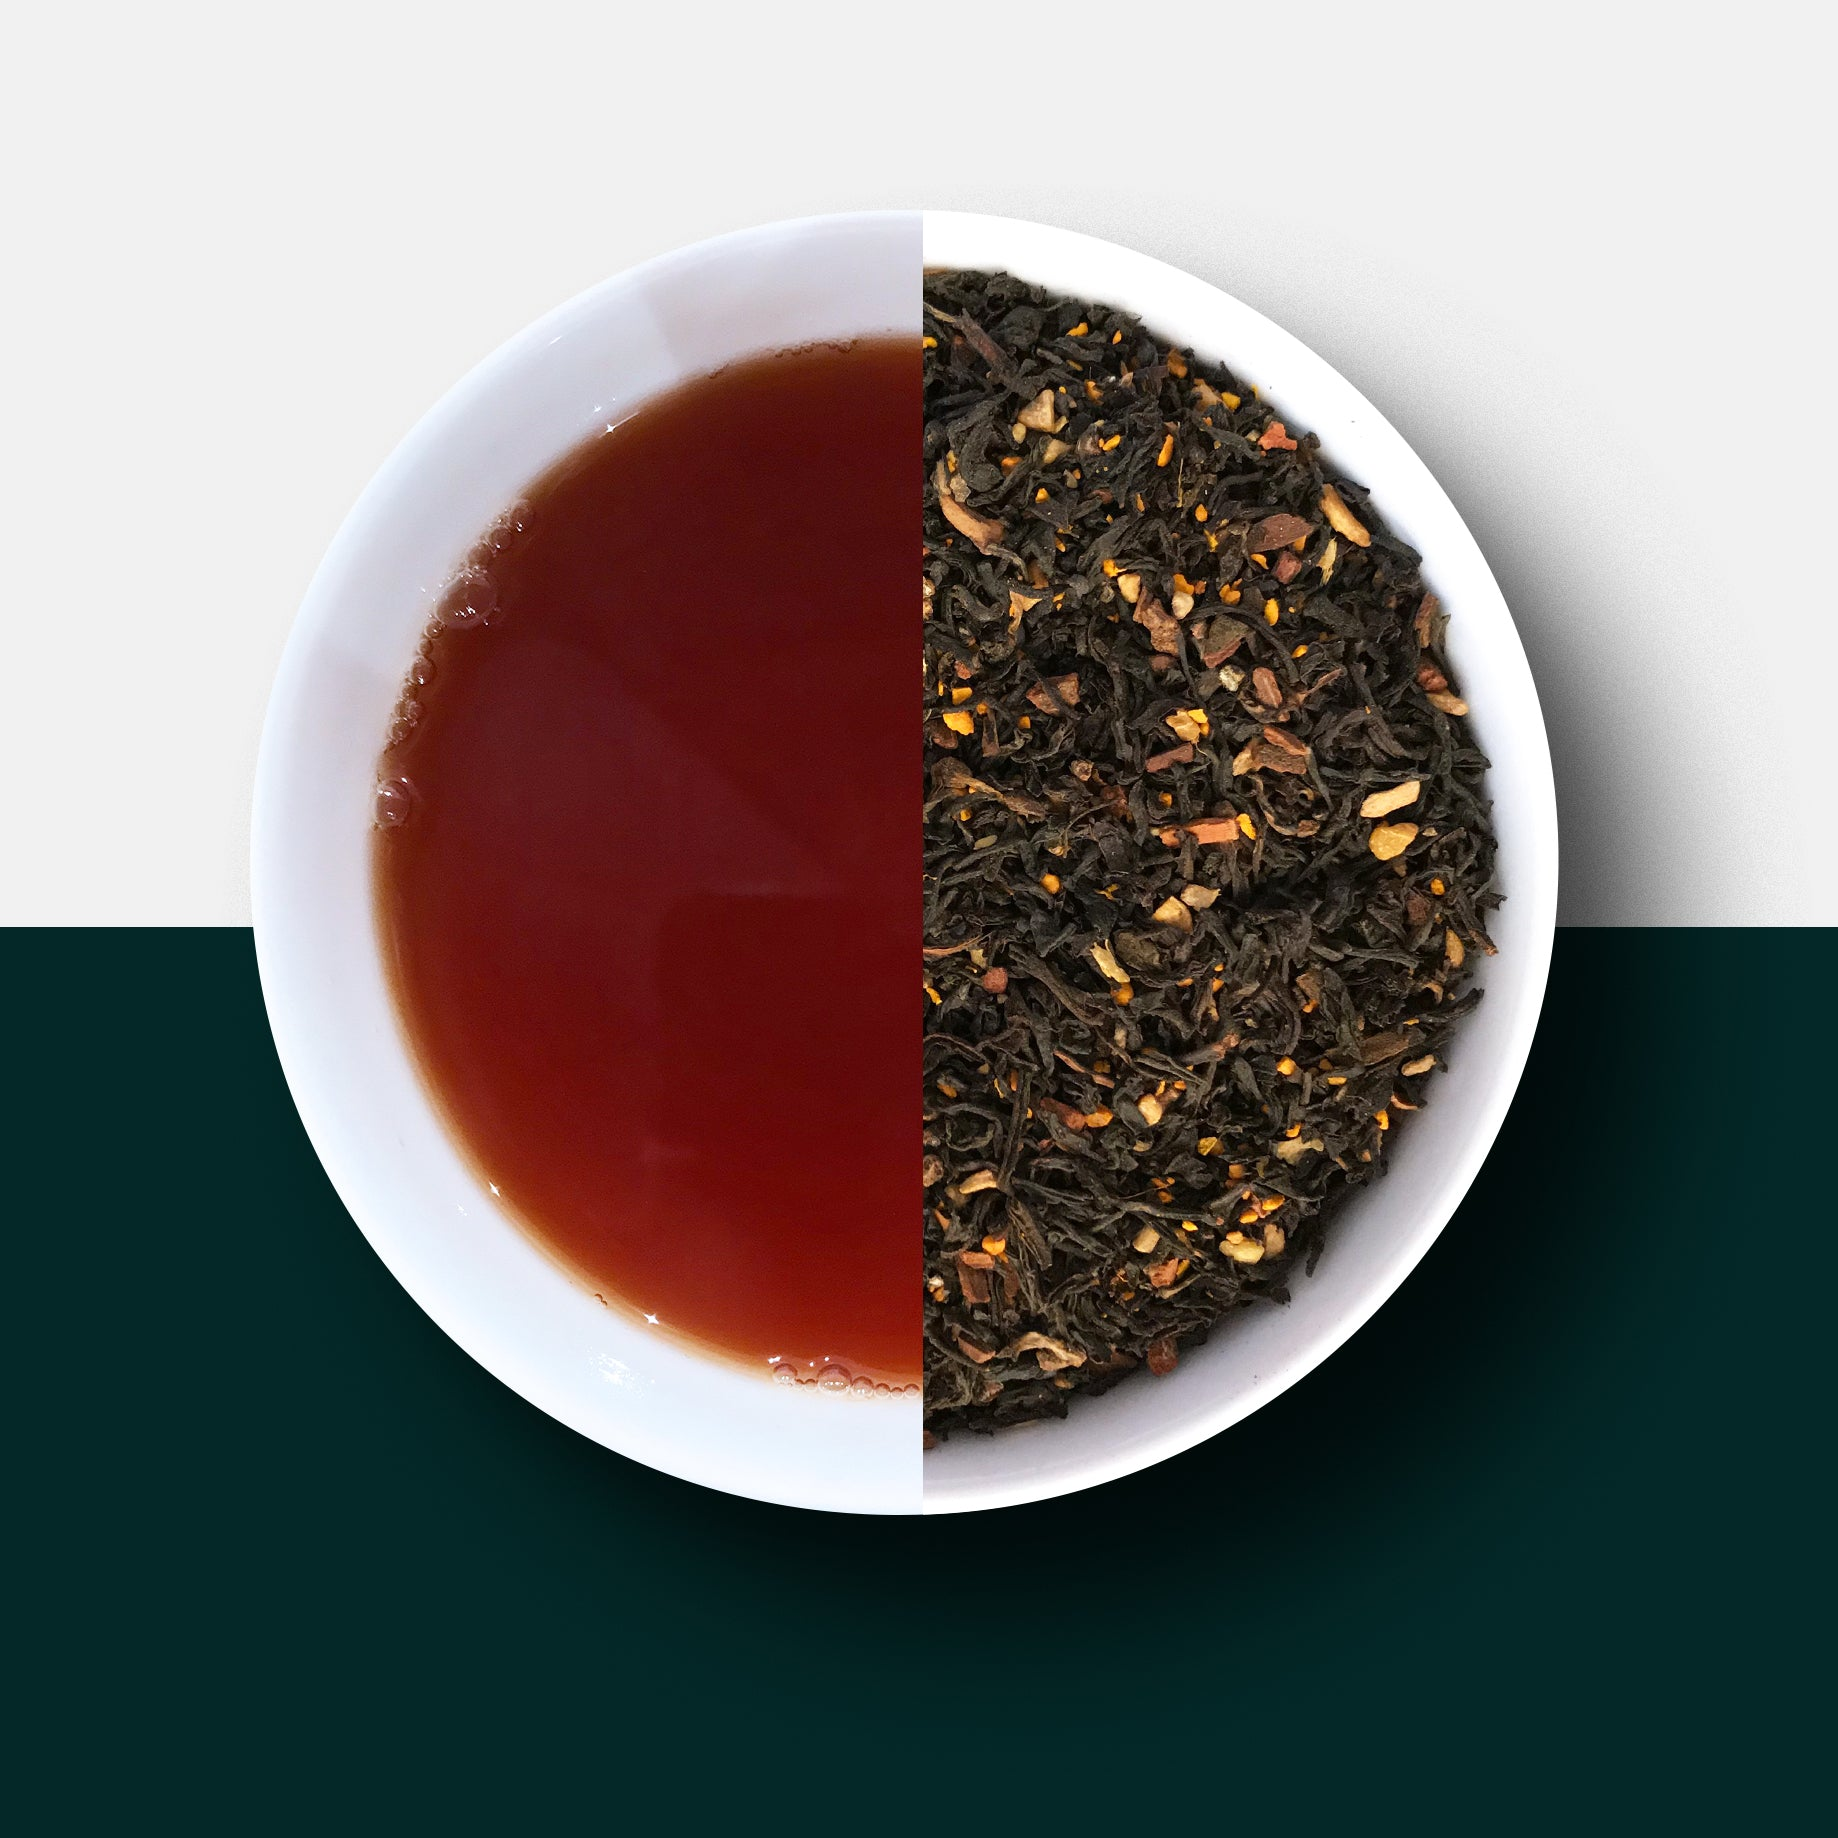 Turmeric chai loose leaf tea leaves and liquid